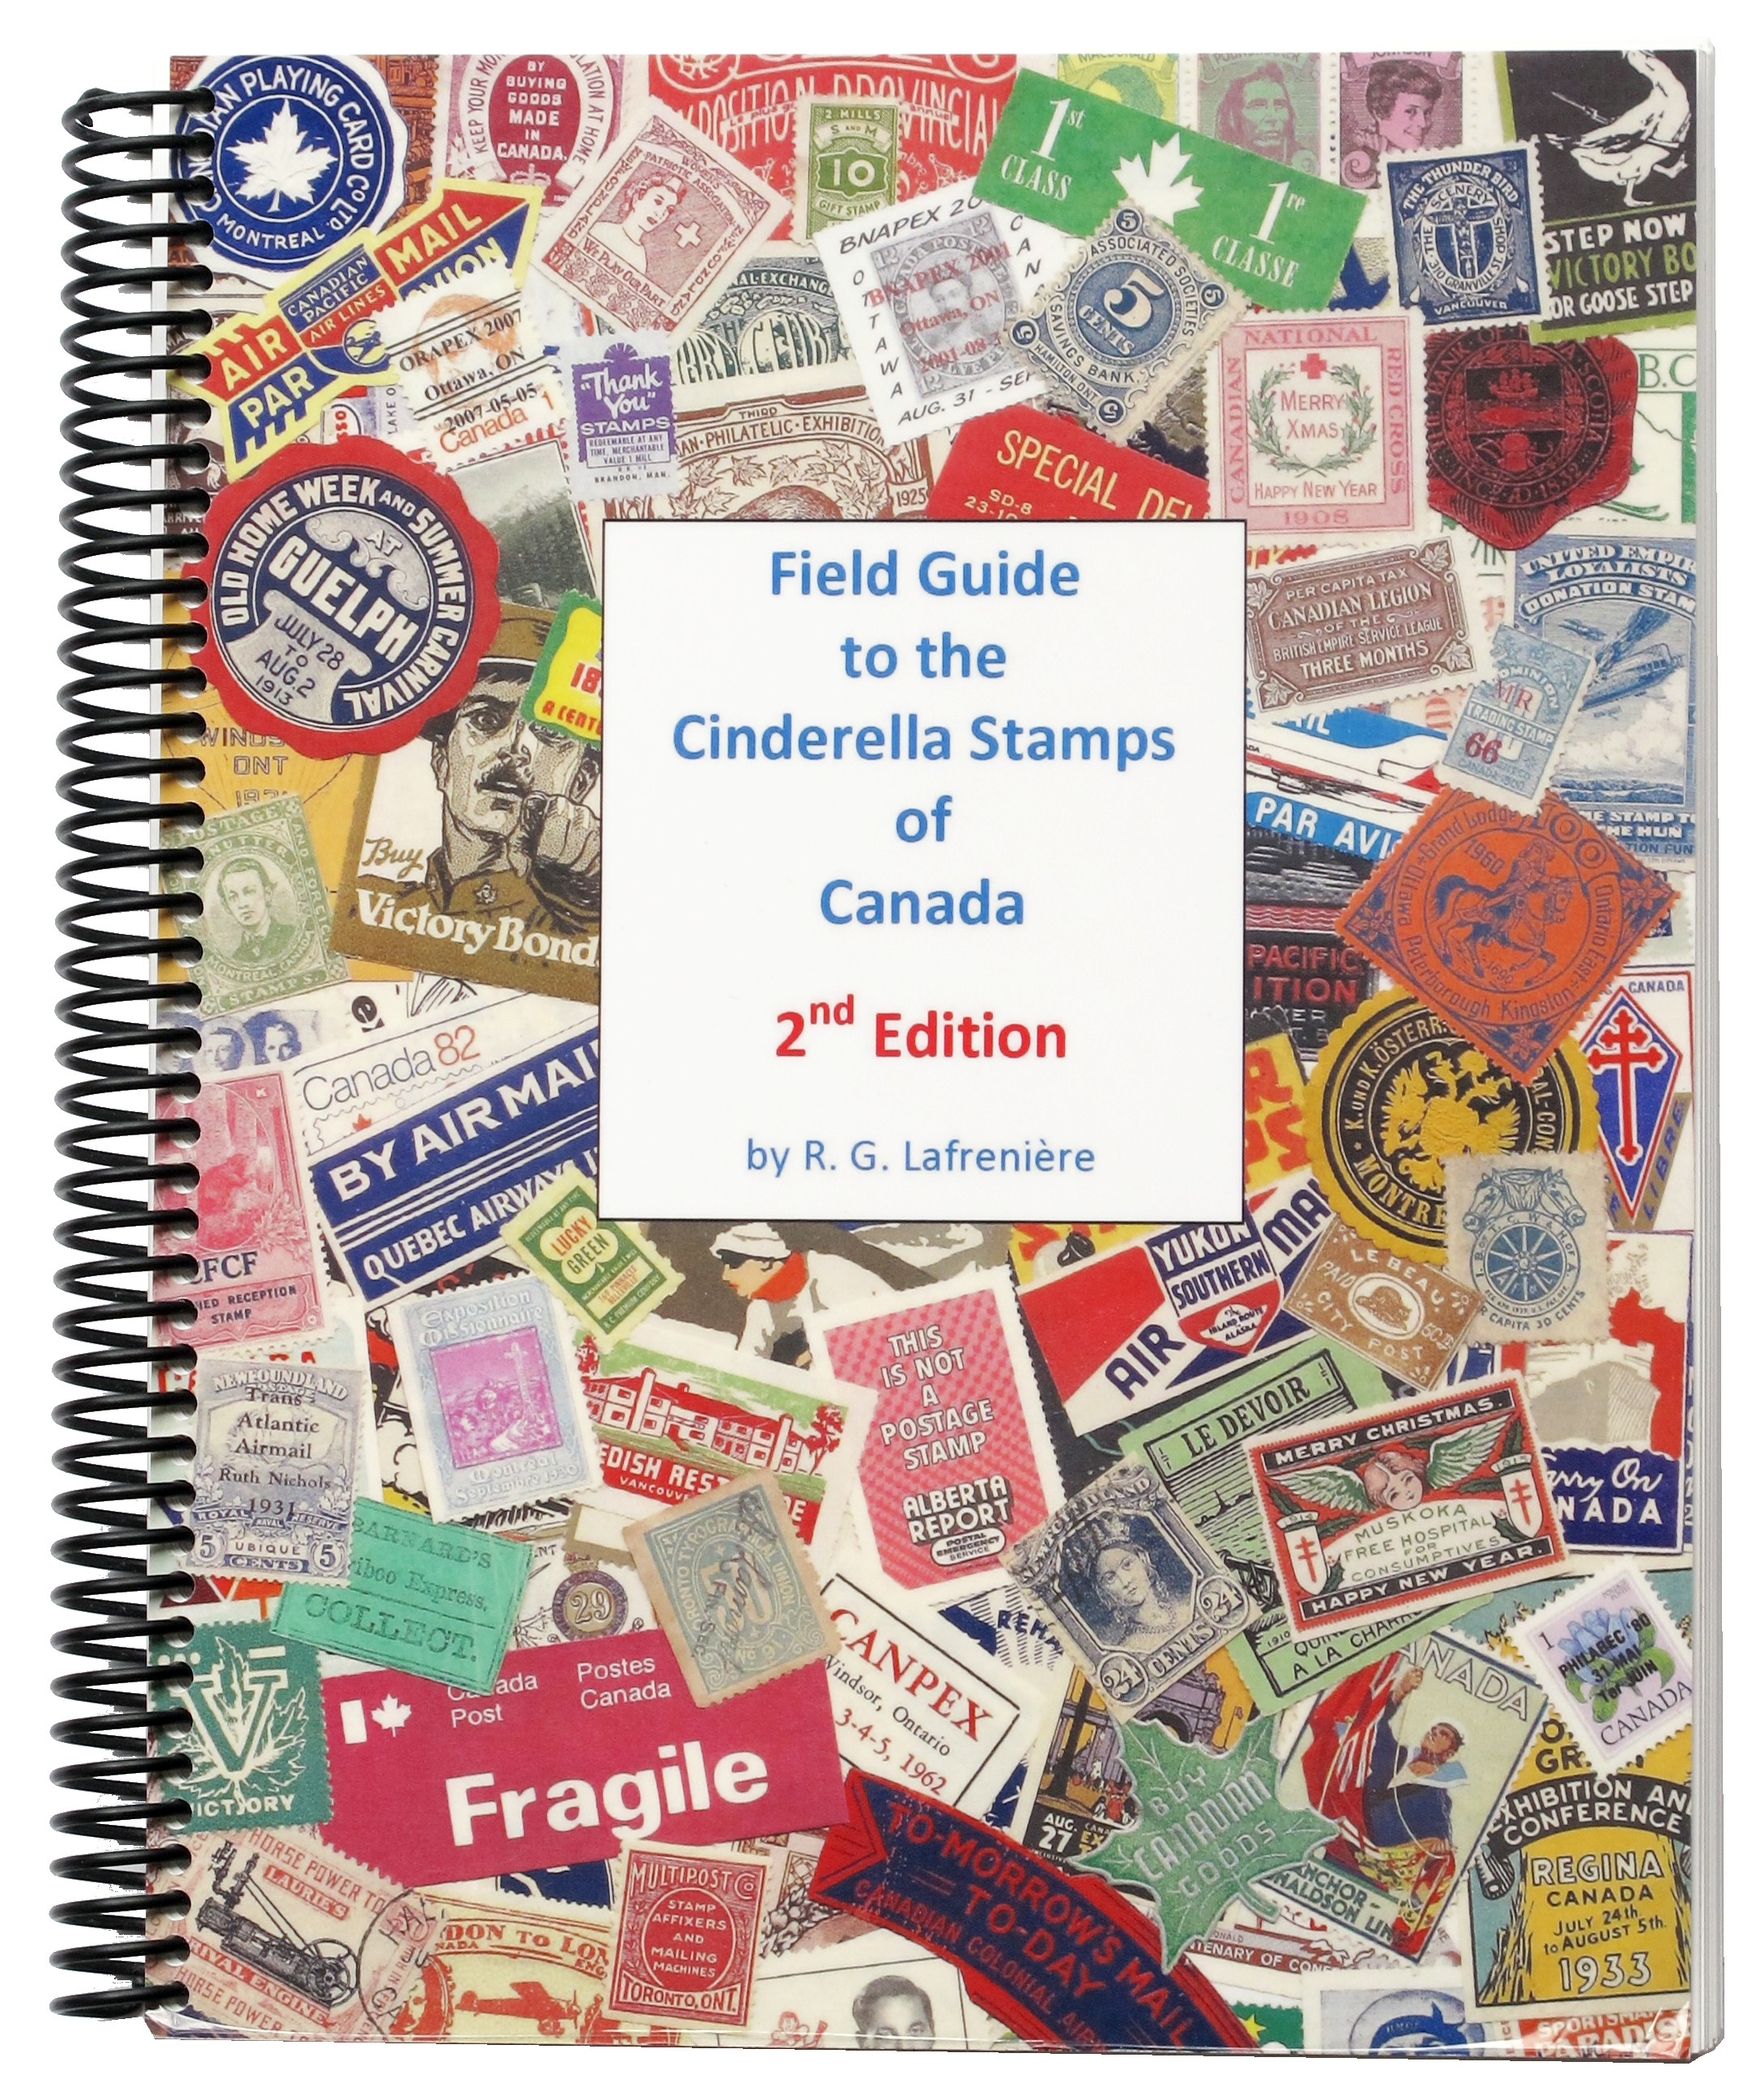 field guide to the cinderella stamps of canada r.g. lafreniere wayzata bileski musgrove purity flour patriotic association of the women of newfoundland hobby club pembina-winnipeg bell's dispatch kers city post know canada series delandre canada local post private carrier cinderella stamps labrador usa esso maritime newfoundland airways moose label vignette visit toronto vancouver golden jubilee kaulbach island juan de fuca spiro forgery fake fournier upm